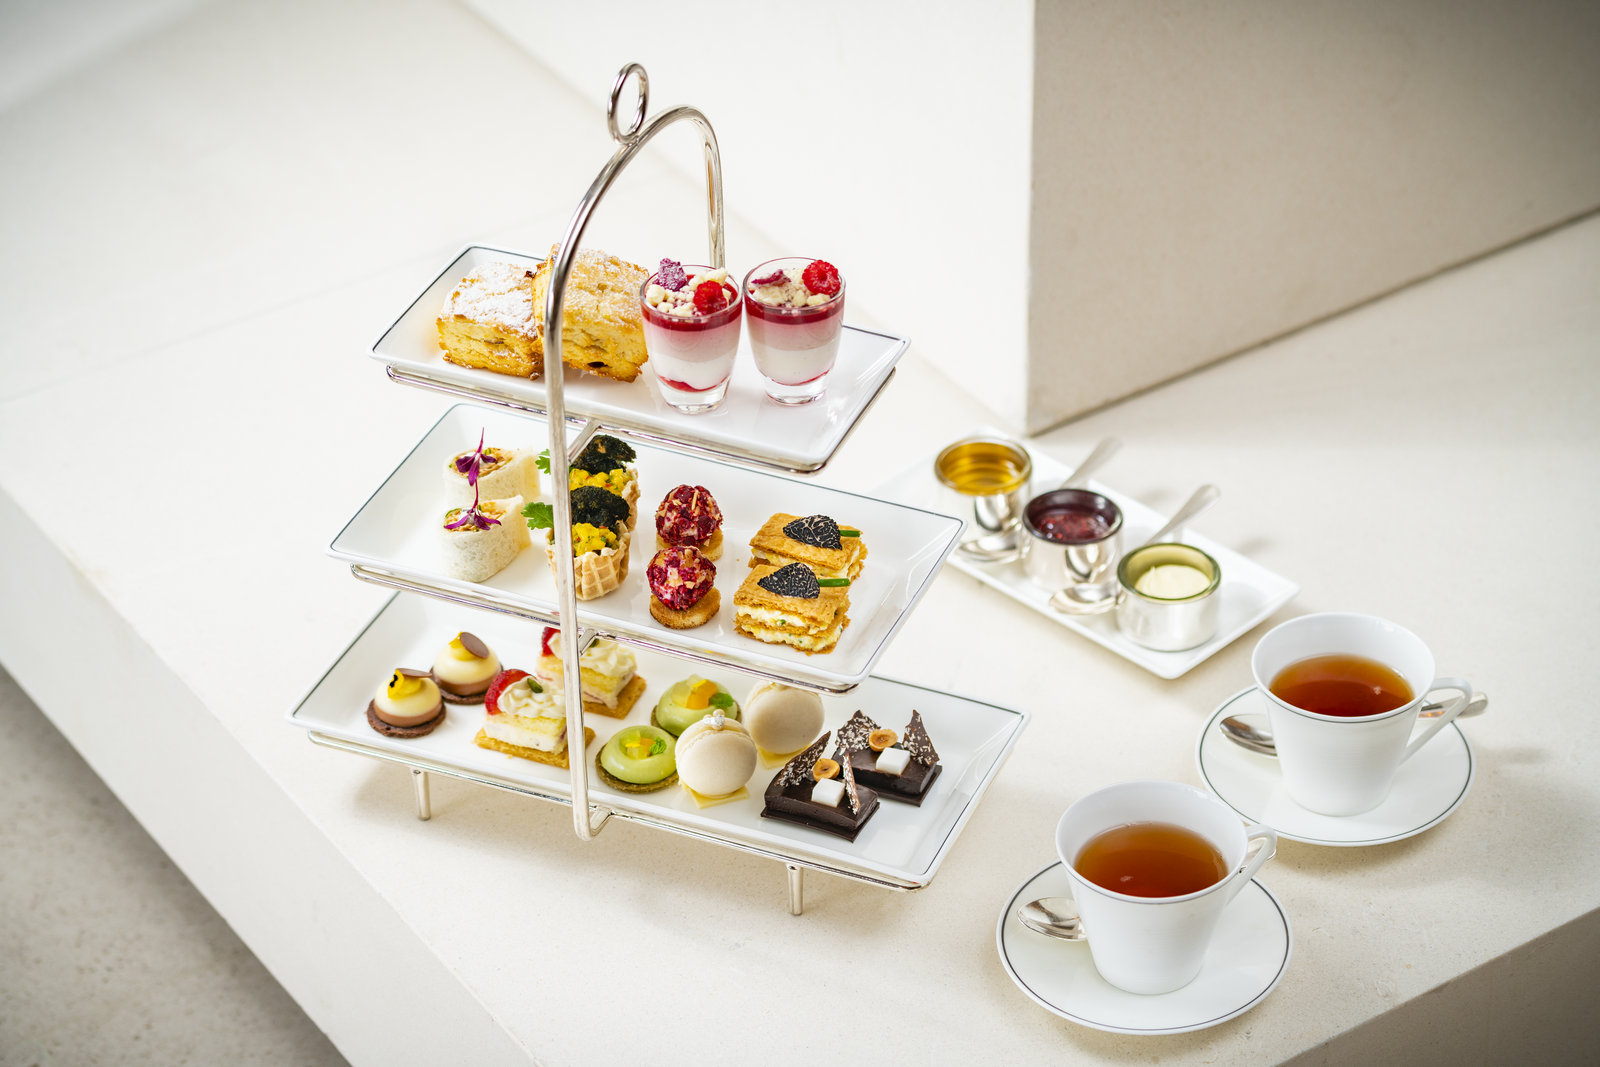 香港奕居Café Gray Deluxe推出時令英式下午茶并送出 Le Labo 禮物包 | Café Gray Deluxe Presents Seasonal Afternoon Tea With Le ...